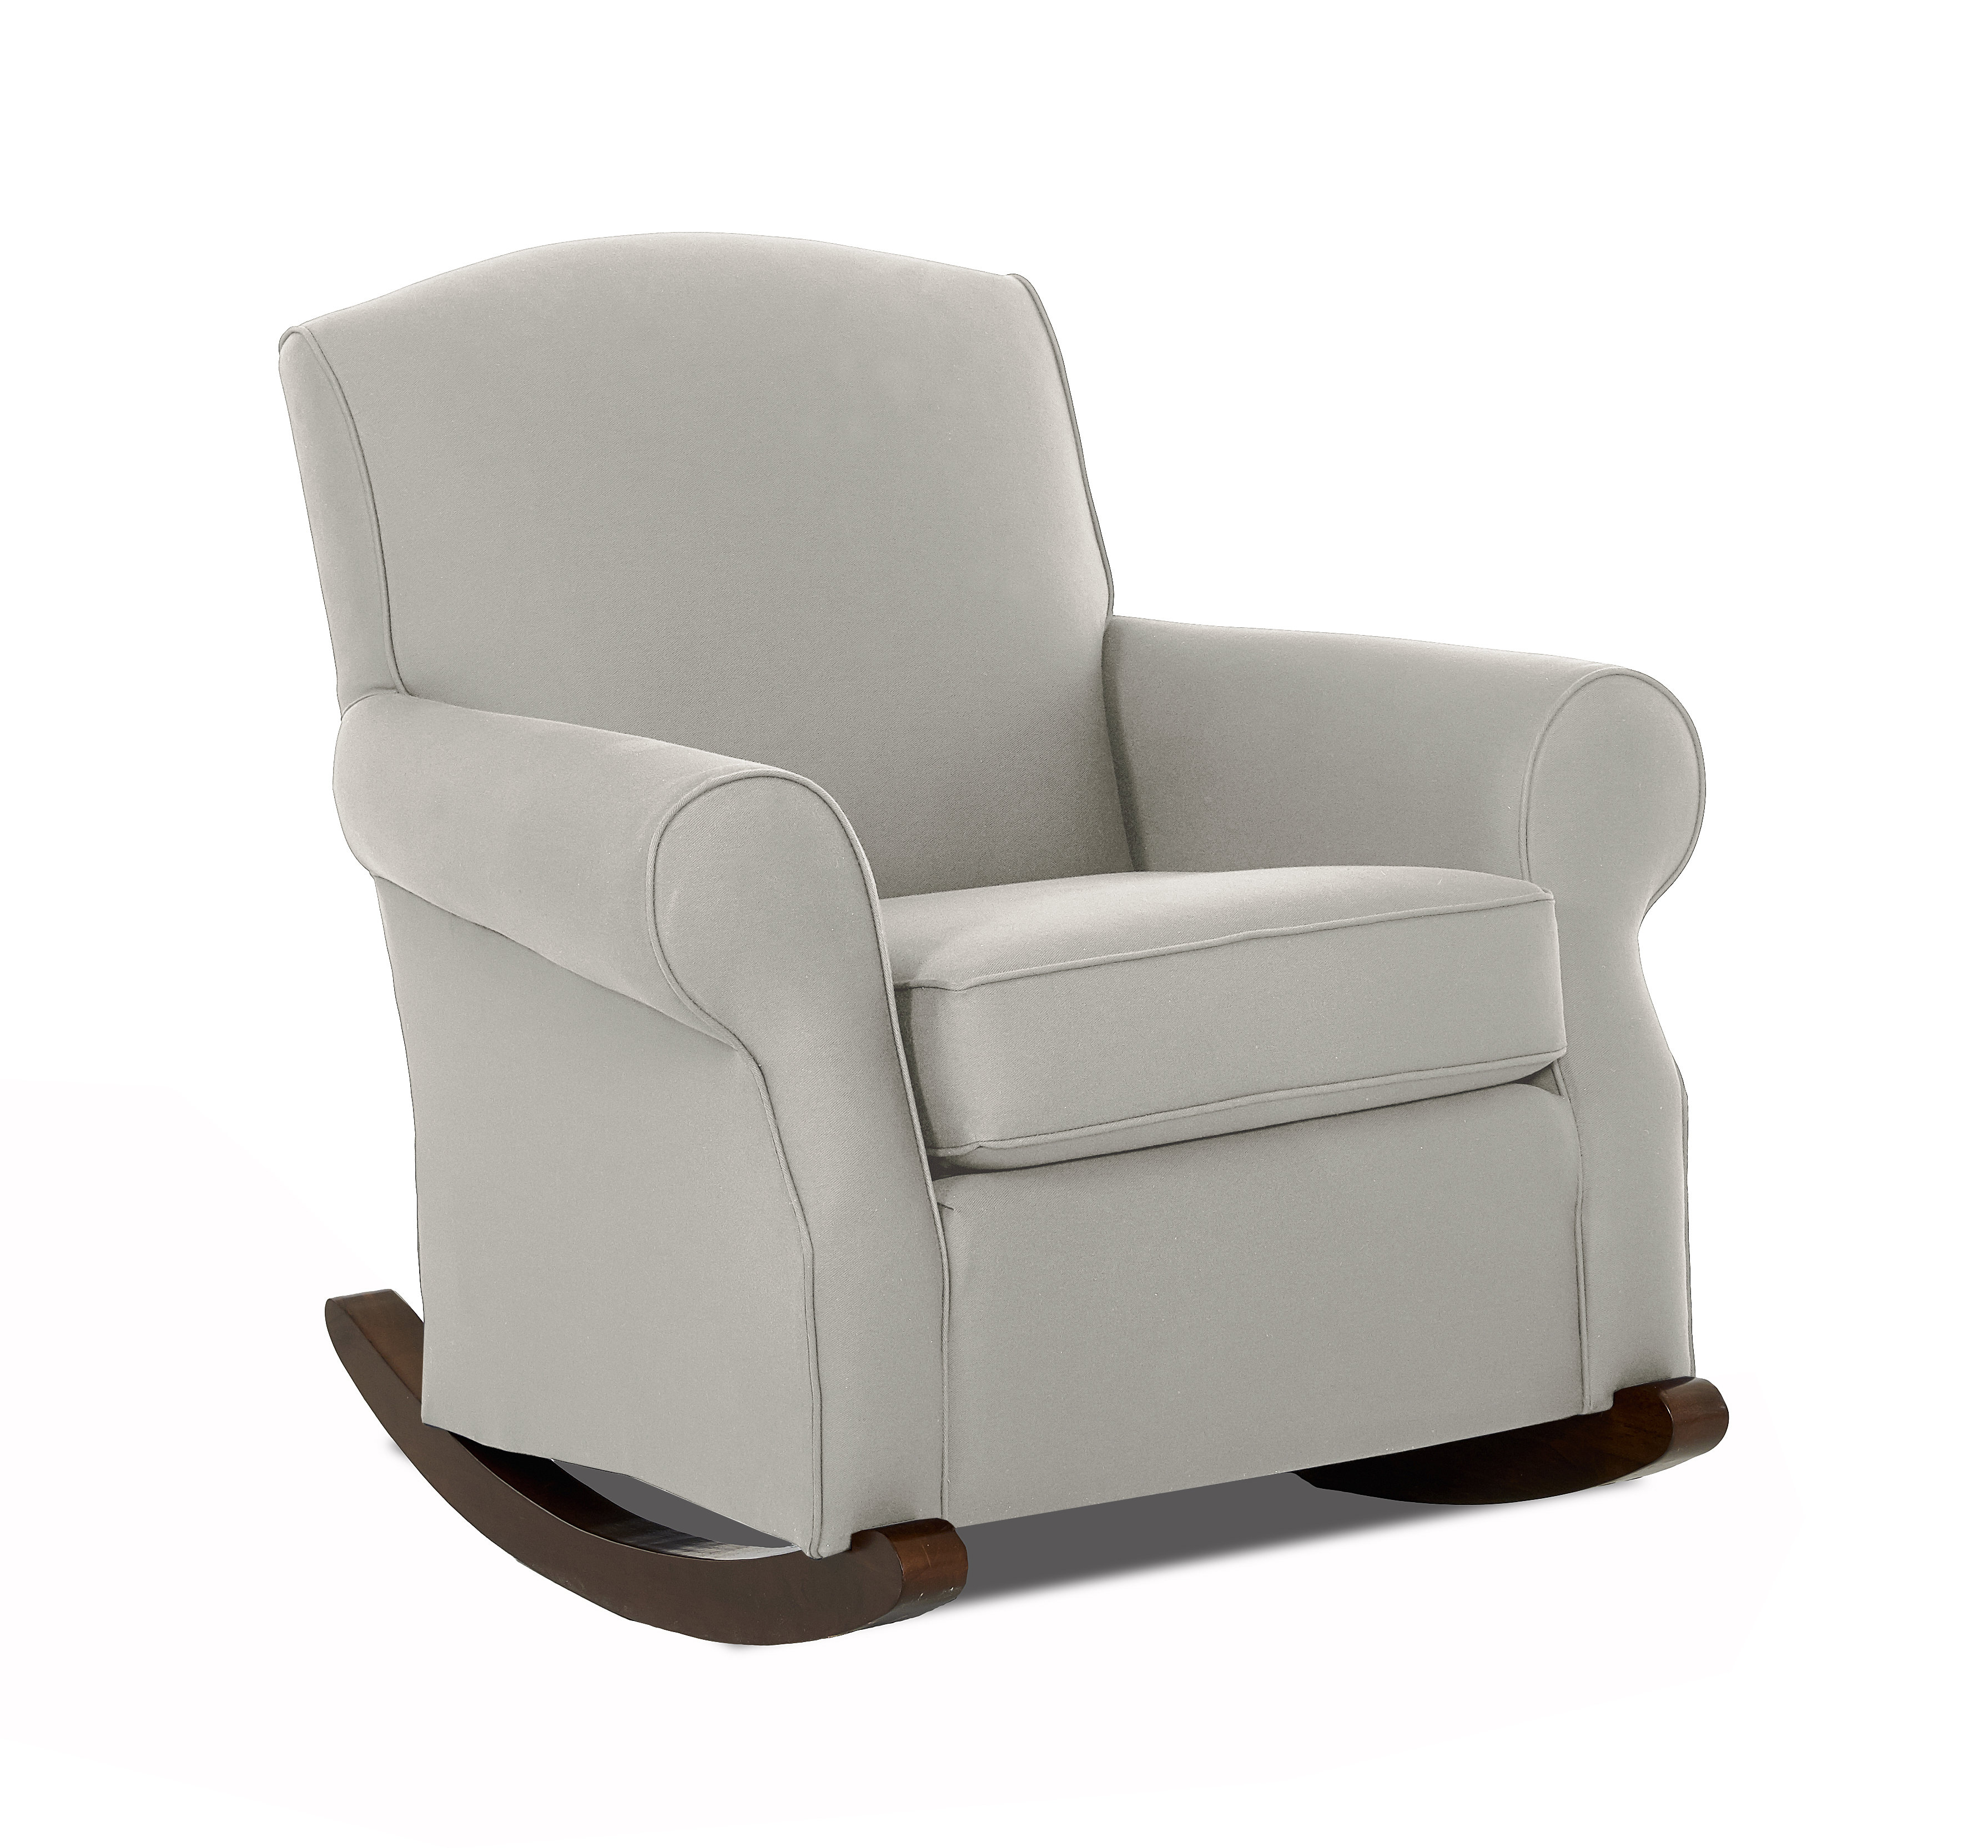 Marlowe Rocking Chair Regarding Padded Rocking Chairs (#13 of 20)